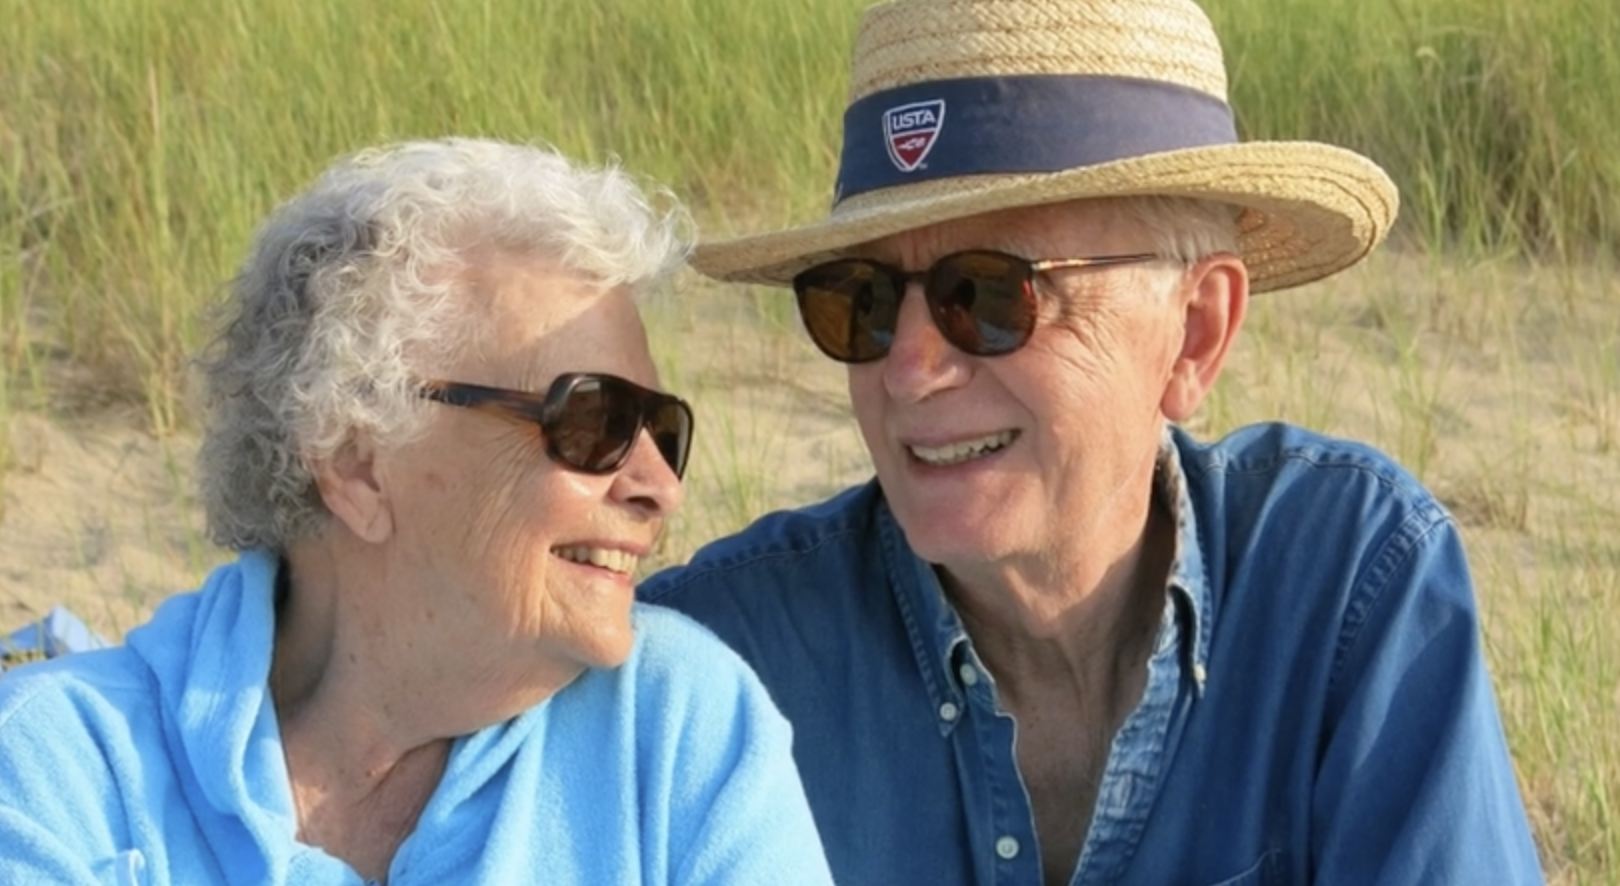 This New Video Series About Senior Couples and Their Love Stories Is Going to MELT YOU